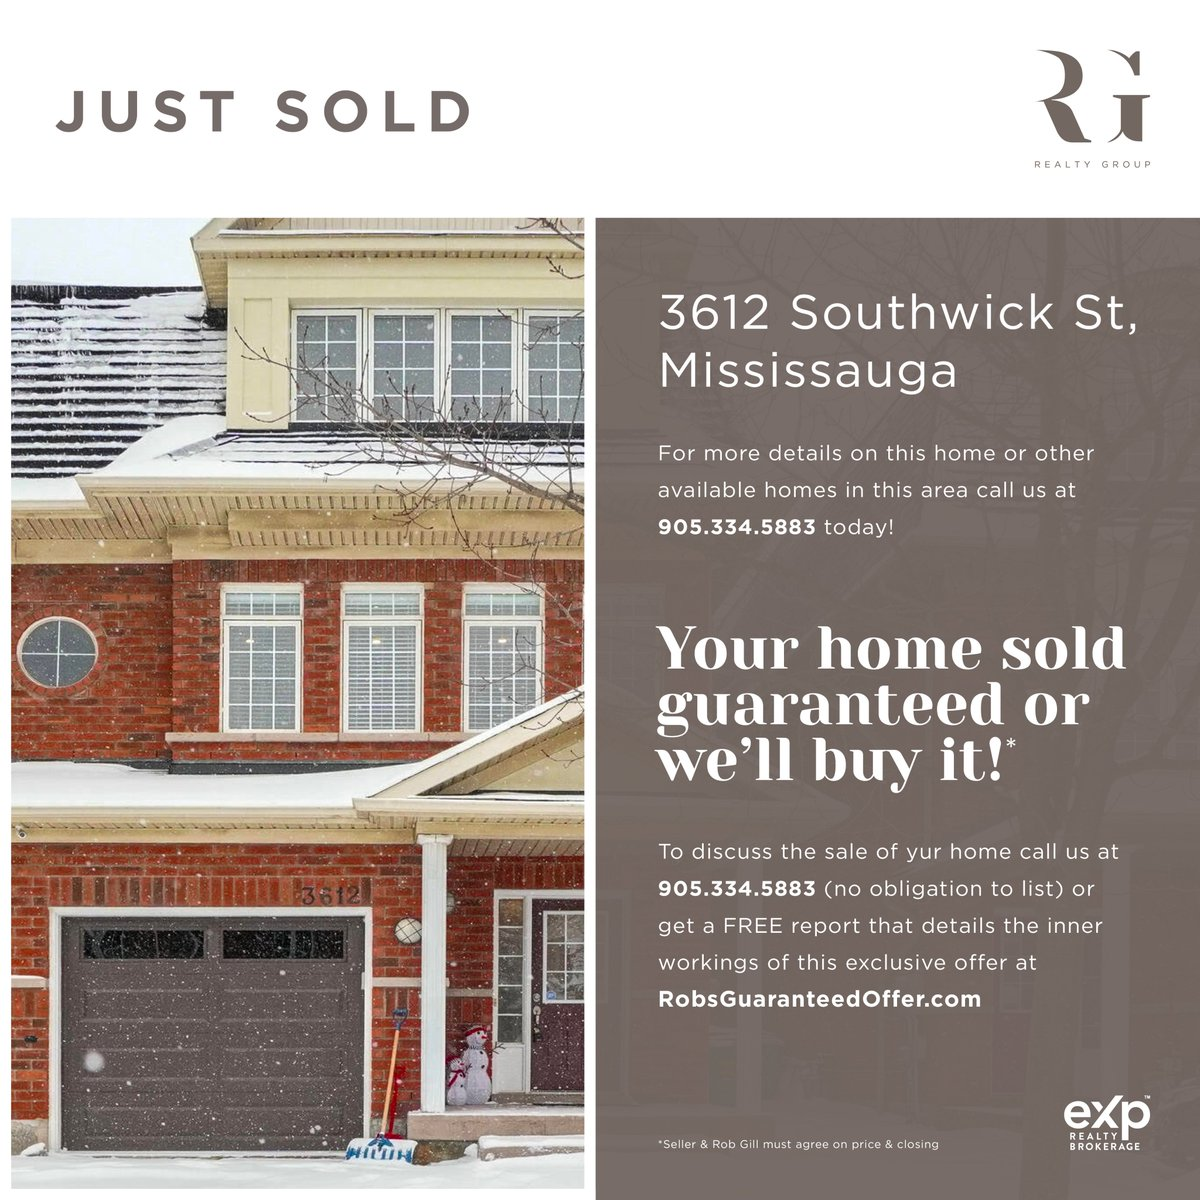 We Sold This Home For $212,000 Over Asking Only In 10 Days!!! We Have Over 3,600 Buyers Looking For A Home Just Like Yours! Your Home May Already Be Sold! To Discuss the Sale of Your Home Call Us at (905) 334-5883  #marchforth #expproud #exprealty #justsold  #topproducers